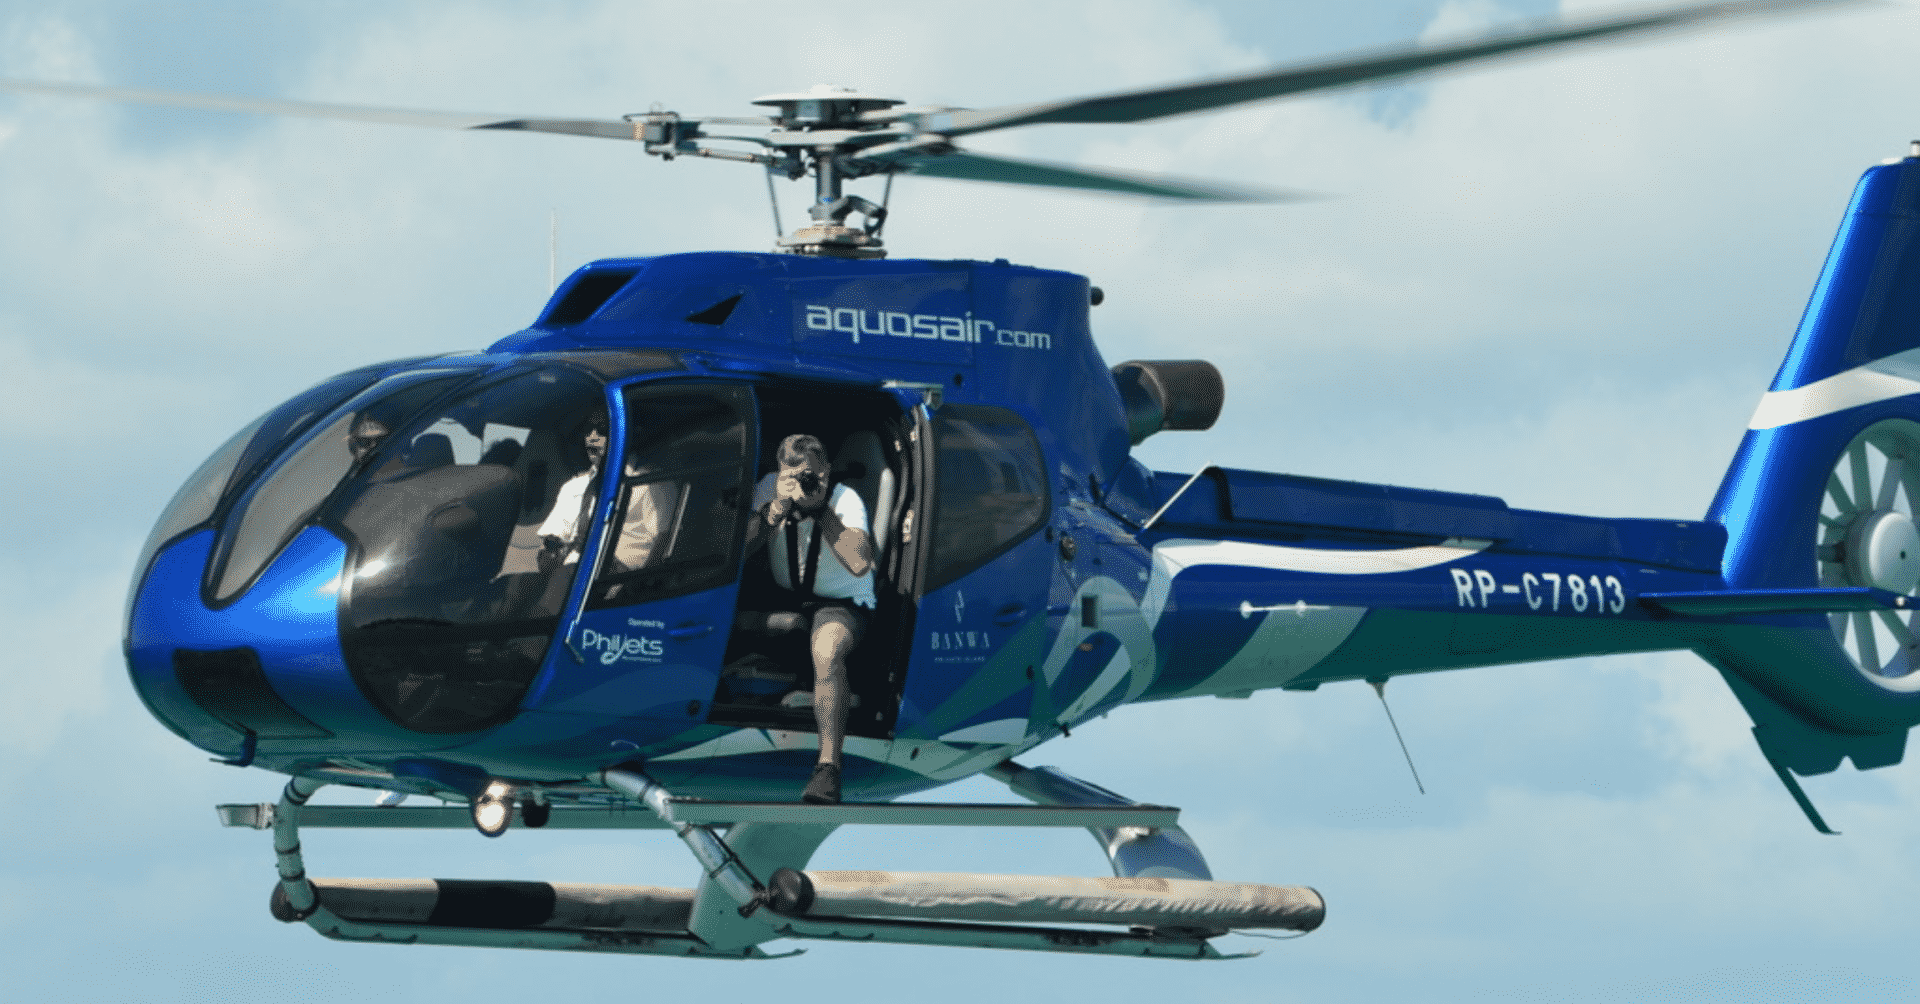 Private Helicopter Tours in $100,000 Per Night Resort